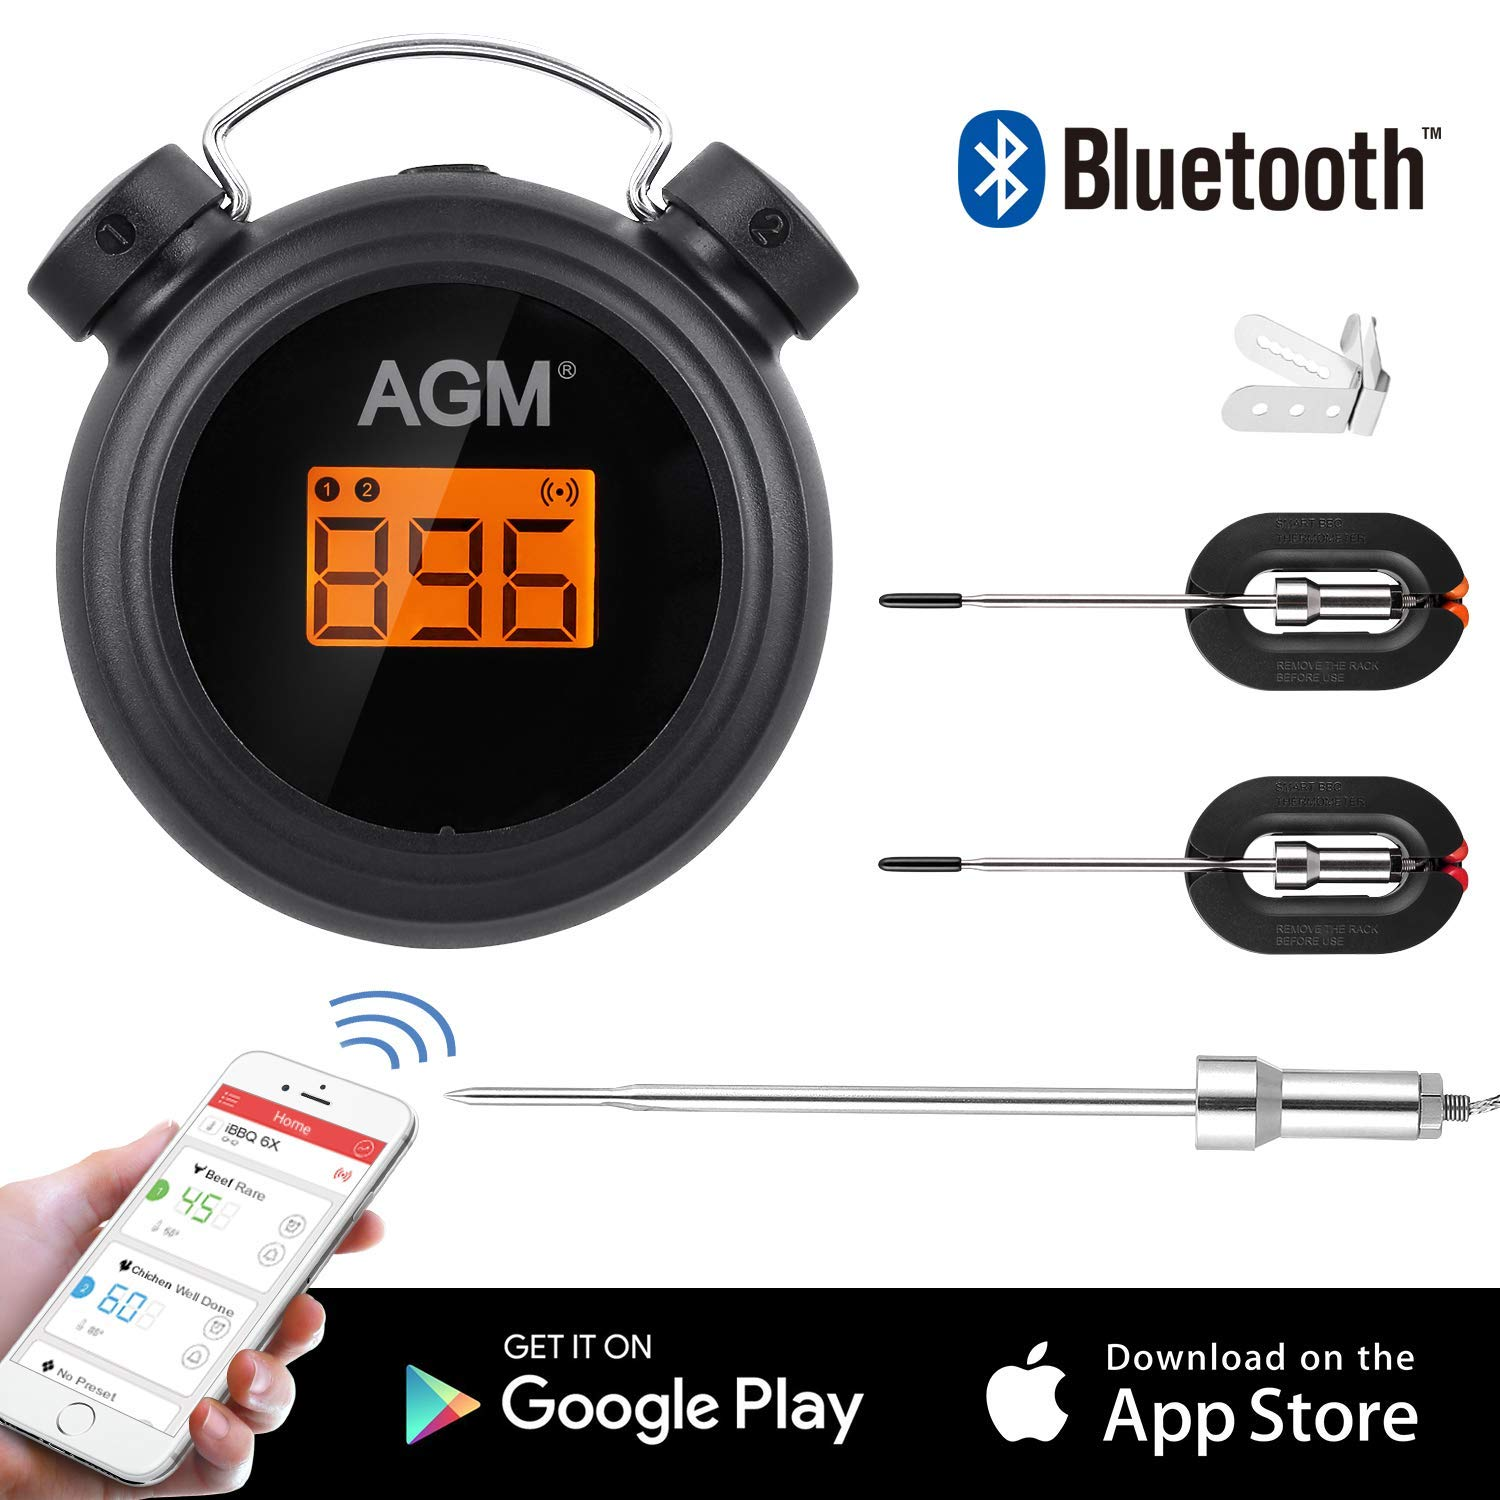 AGM Meat Thermometer Baking Kitchen BBQ Professional Wireless Bluetooth Cooking Thermometer with 2 LCD Probes Screen Temperature Timer Alarm for Barbecue Oven black 2